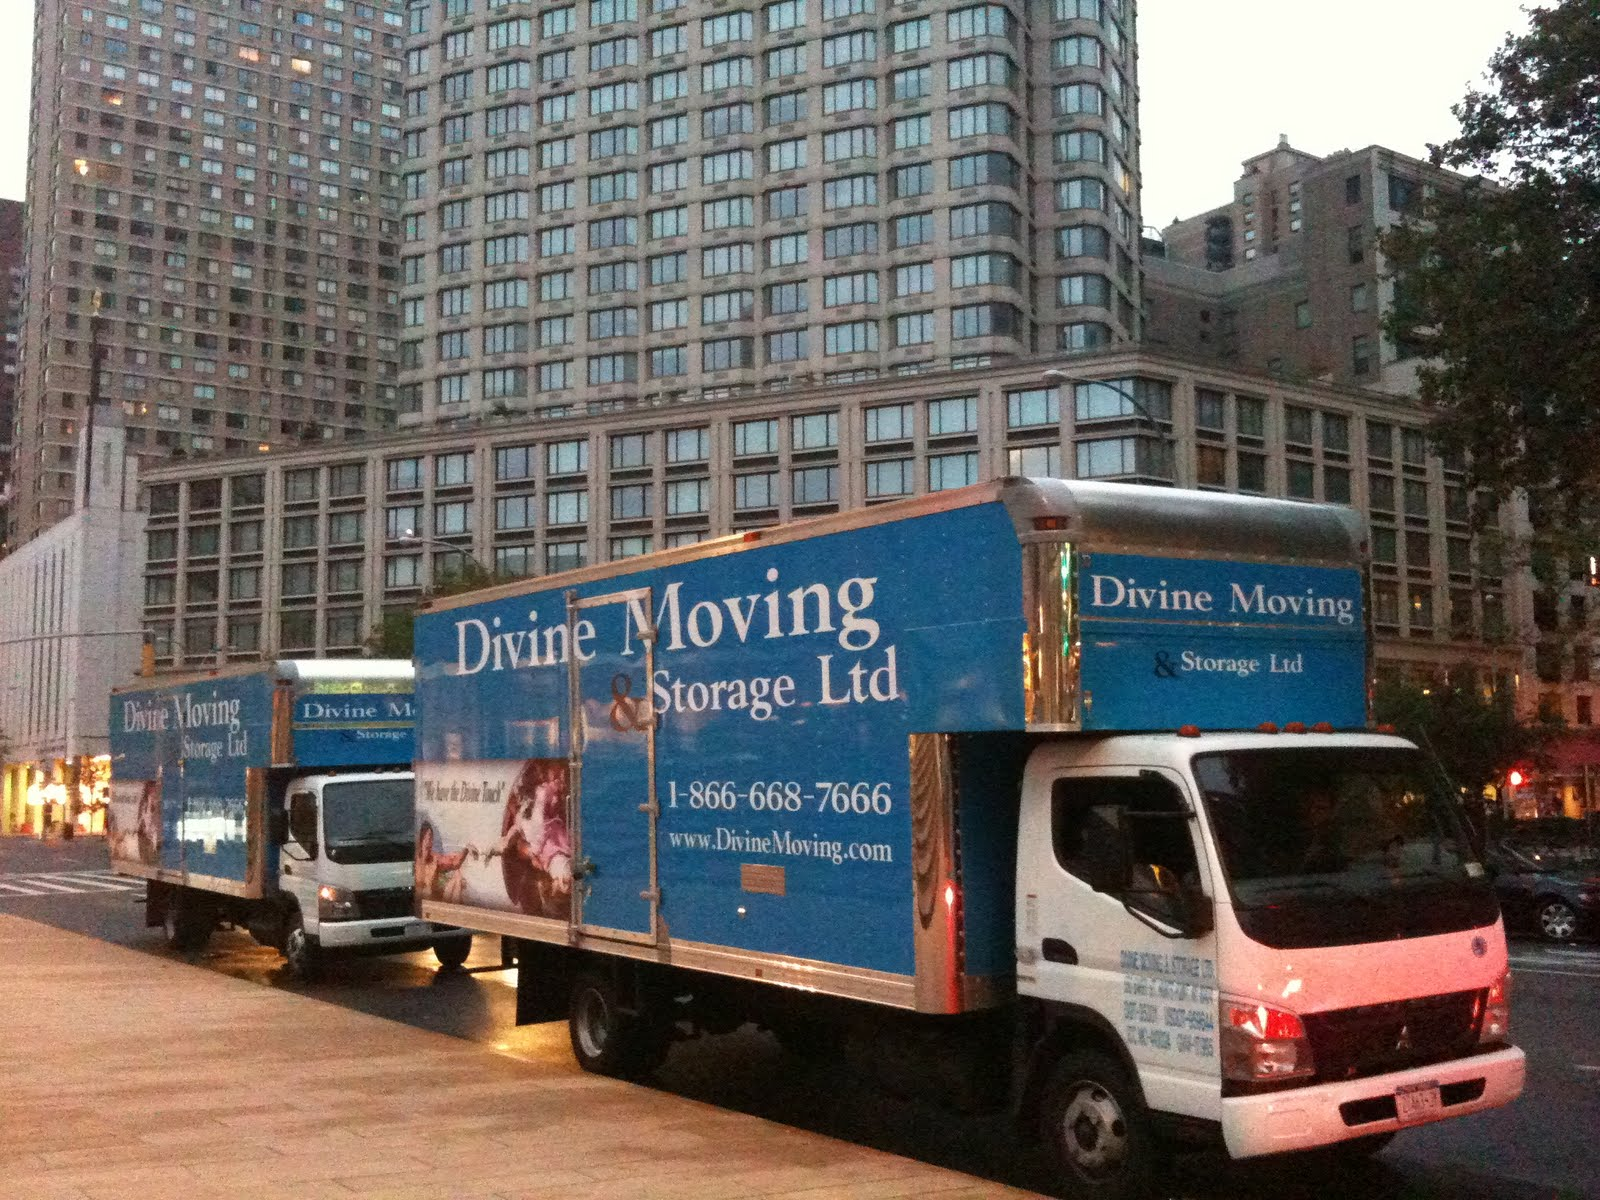 Need Storage? Divine Moving And Storage Offers A Free Month Of Storage With  Any Booked Move. Call 212 244 4011 Or Log On To Http://www.divinemoving.com  For ...